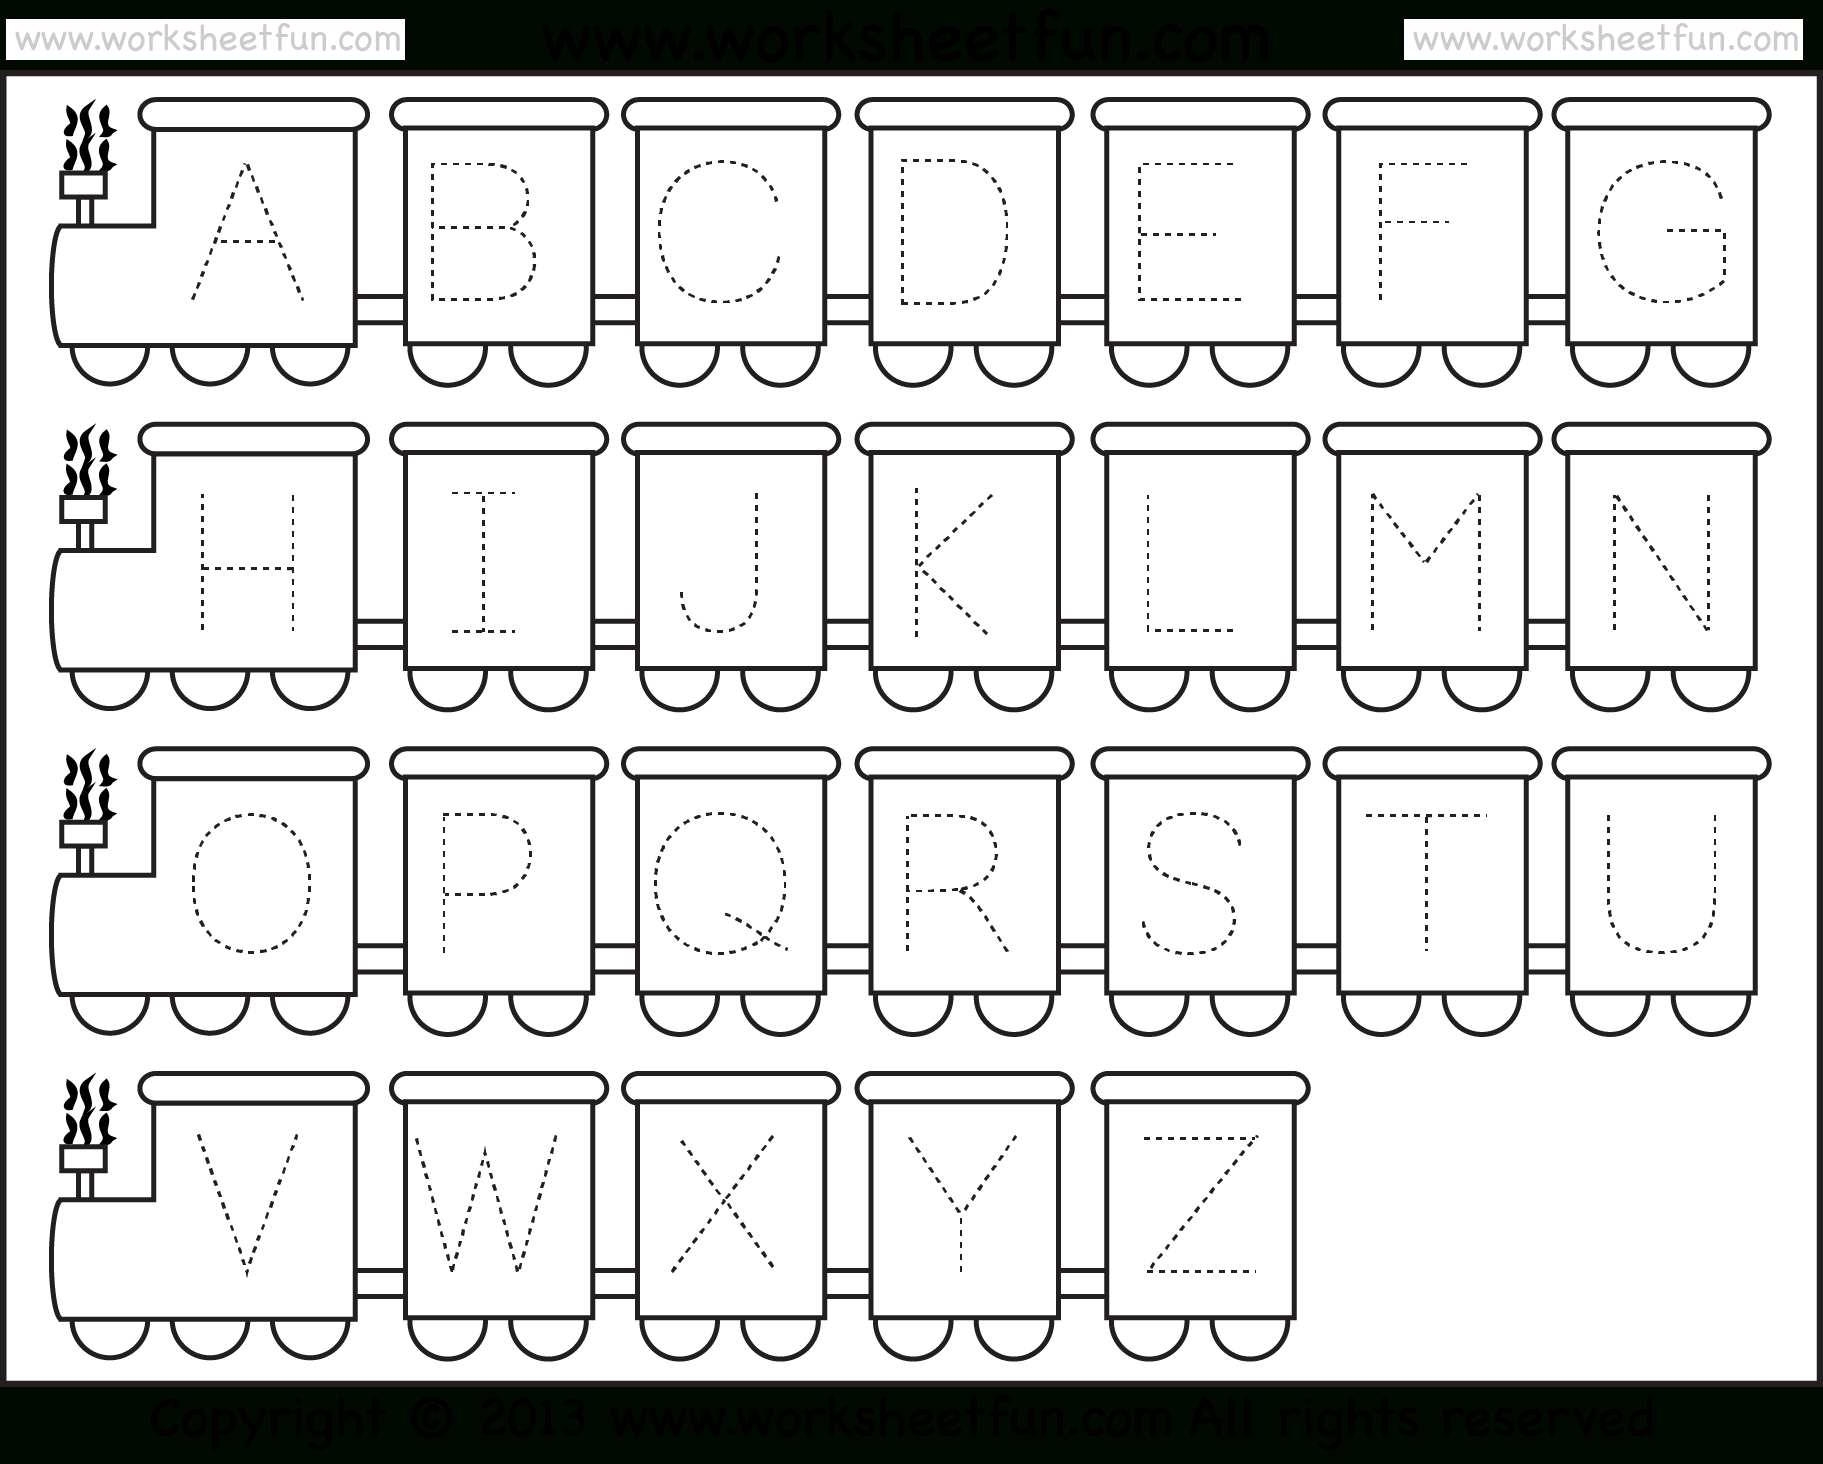 Letter Tracing Worksheet – Train Theme / Free Printable Worksheets - Free Printable Alphabet Tracing Worksheets